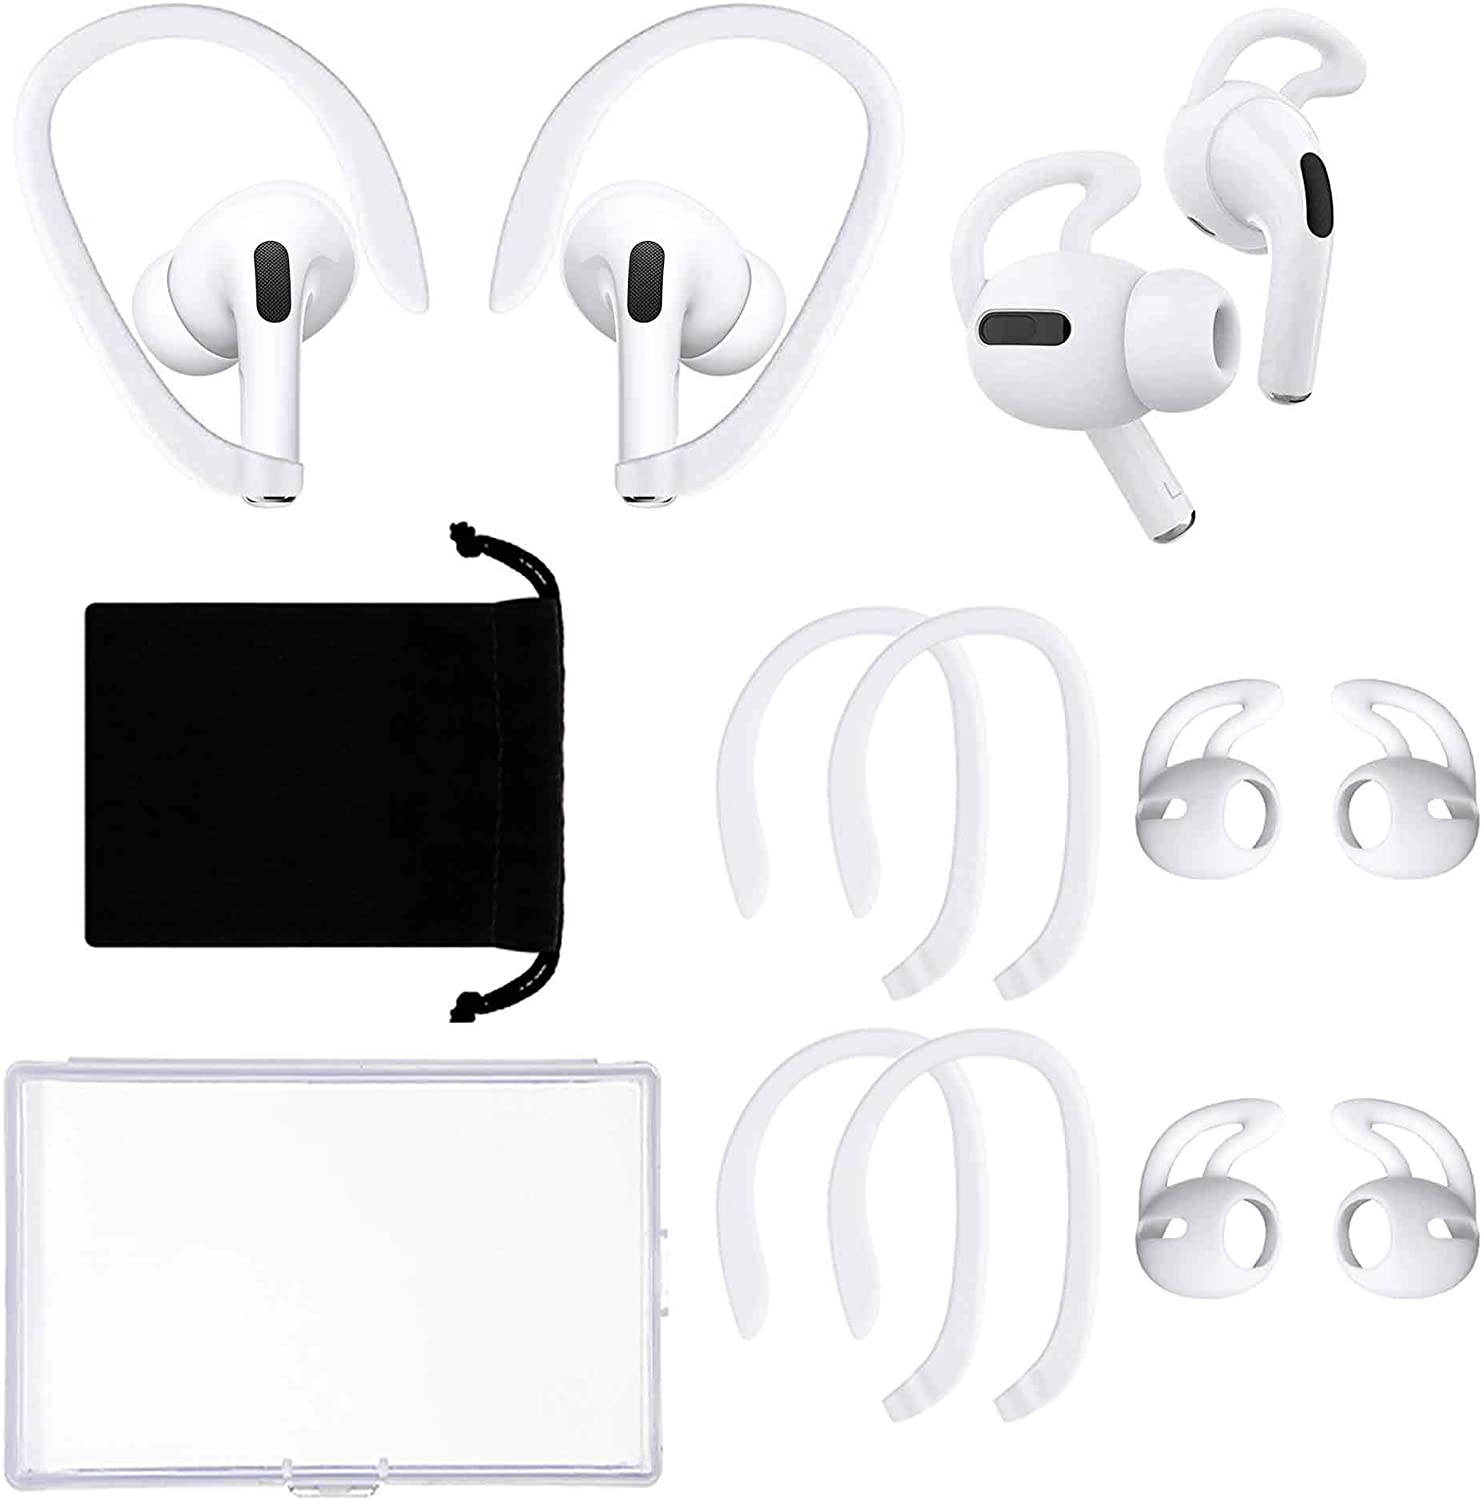 4 Pairs Ear Hooks Compatible with Apple AirPods Pro, Anti-Slip Anti-Drop Ear Covers AirPods Accessories for Running, Cycling and Other Indoor-Outdoor Activities (White)